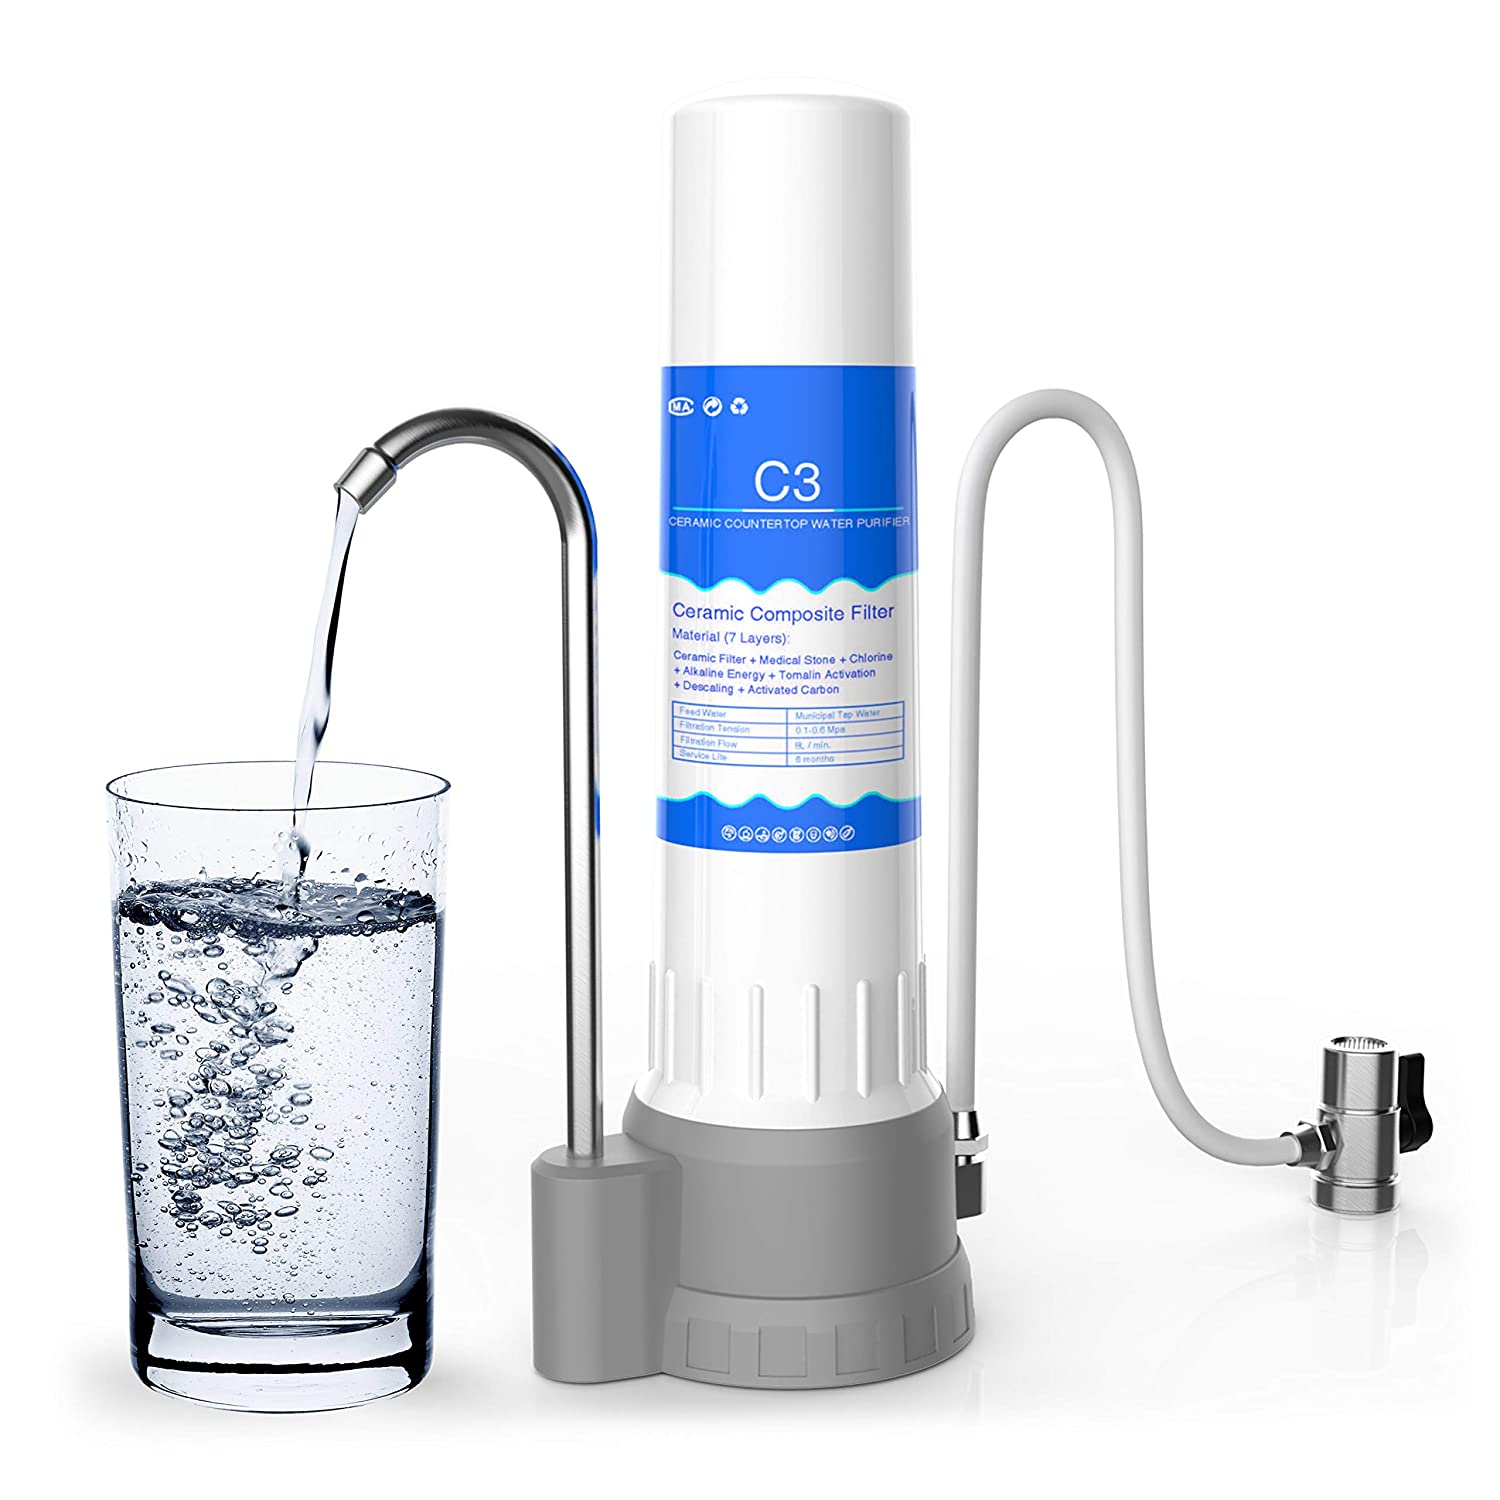 Best Water Filter Countertop Ceramic - Your Home Life